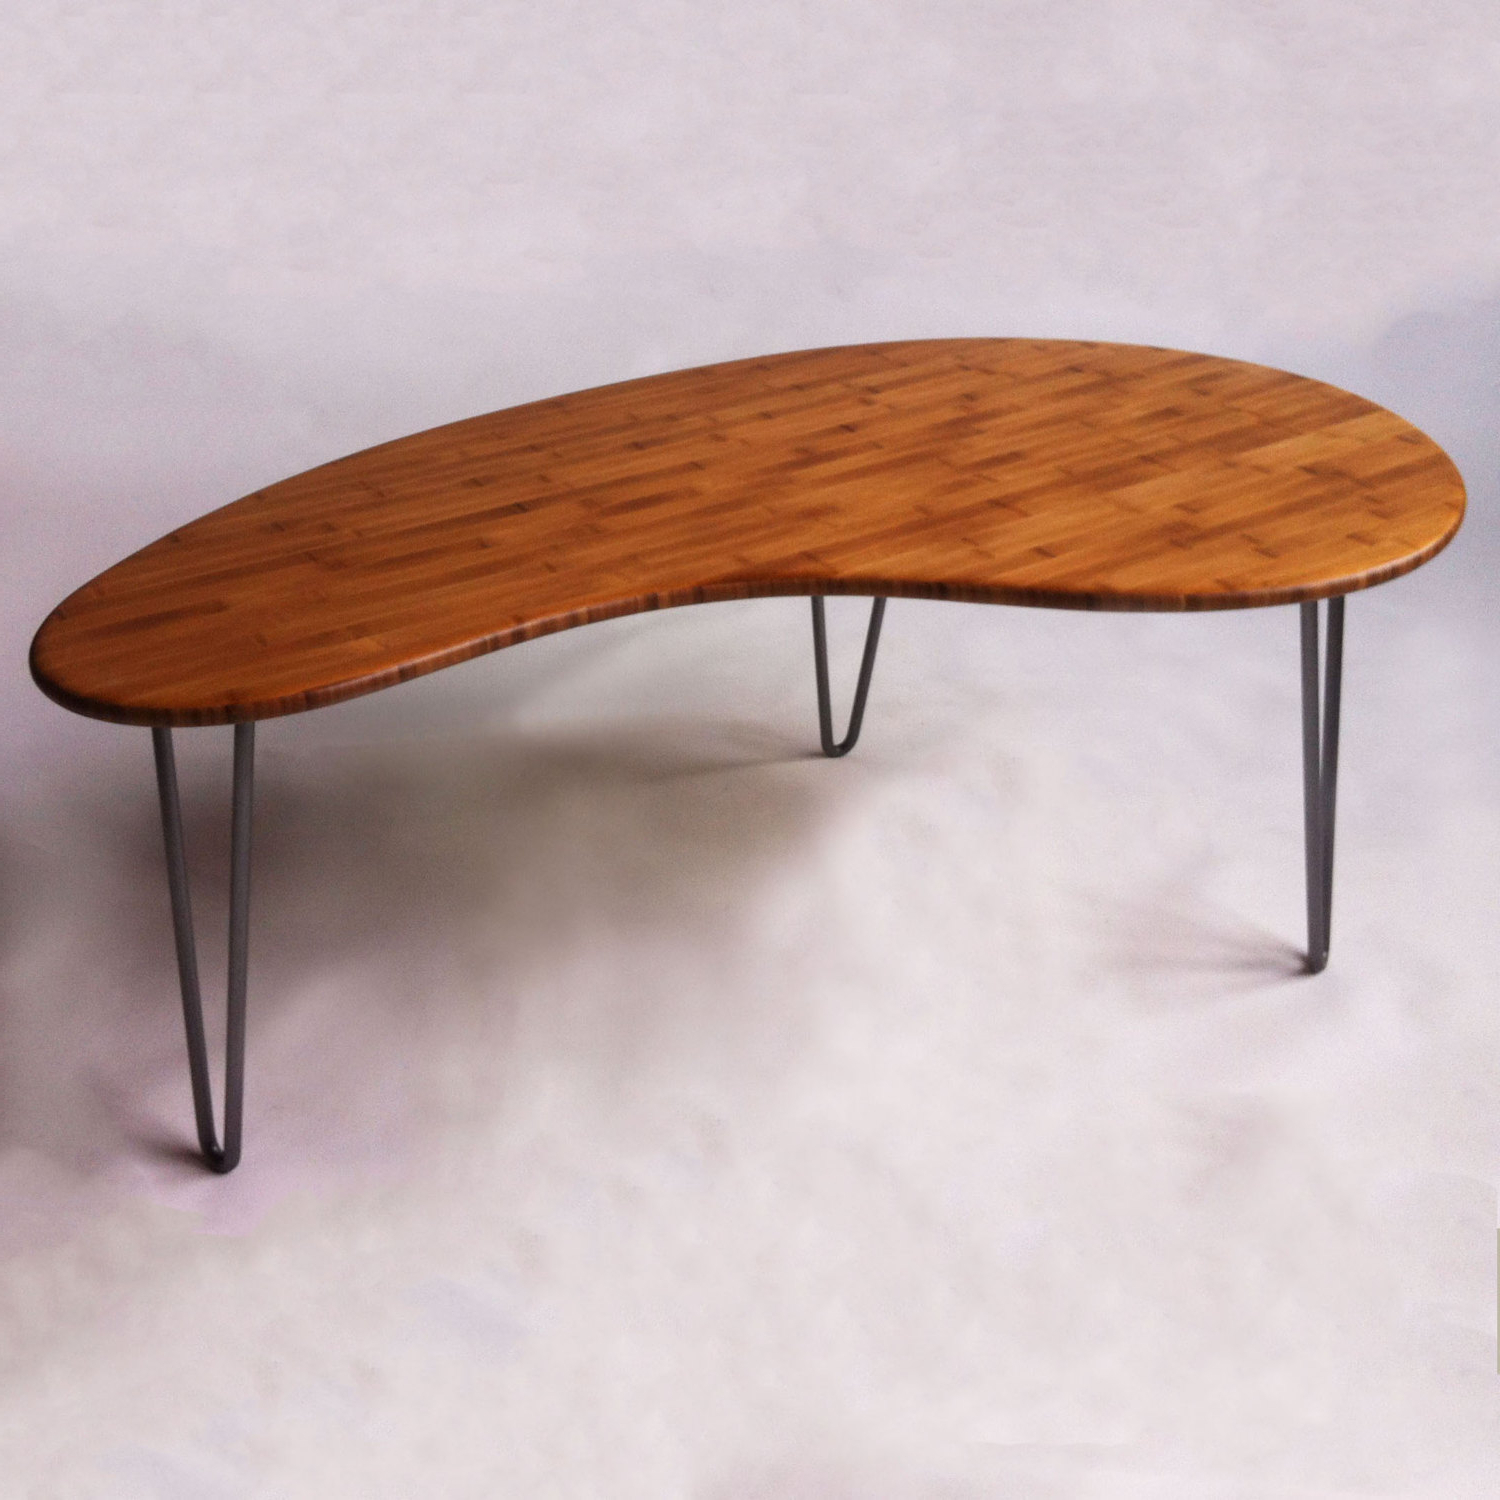 Furniture: Alluring Kidney Shaped Coffee Table With Futuristic Regarding Well Liked Jelly Bean Coffee Tables (Gallery 7 of 20)